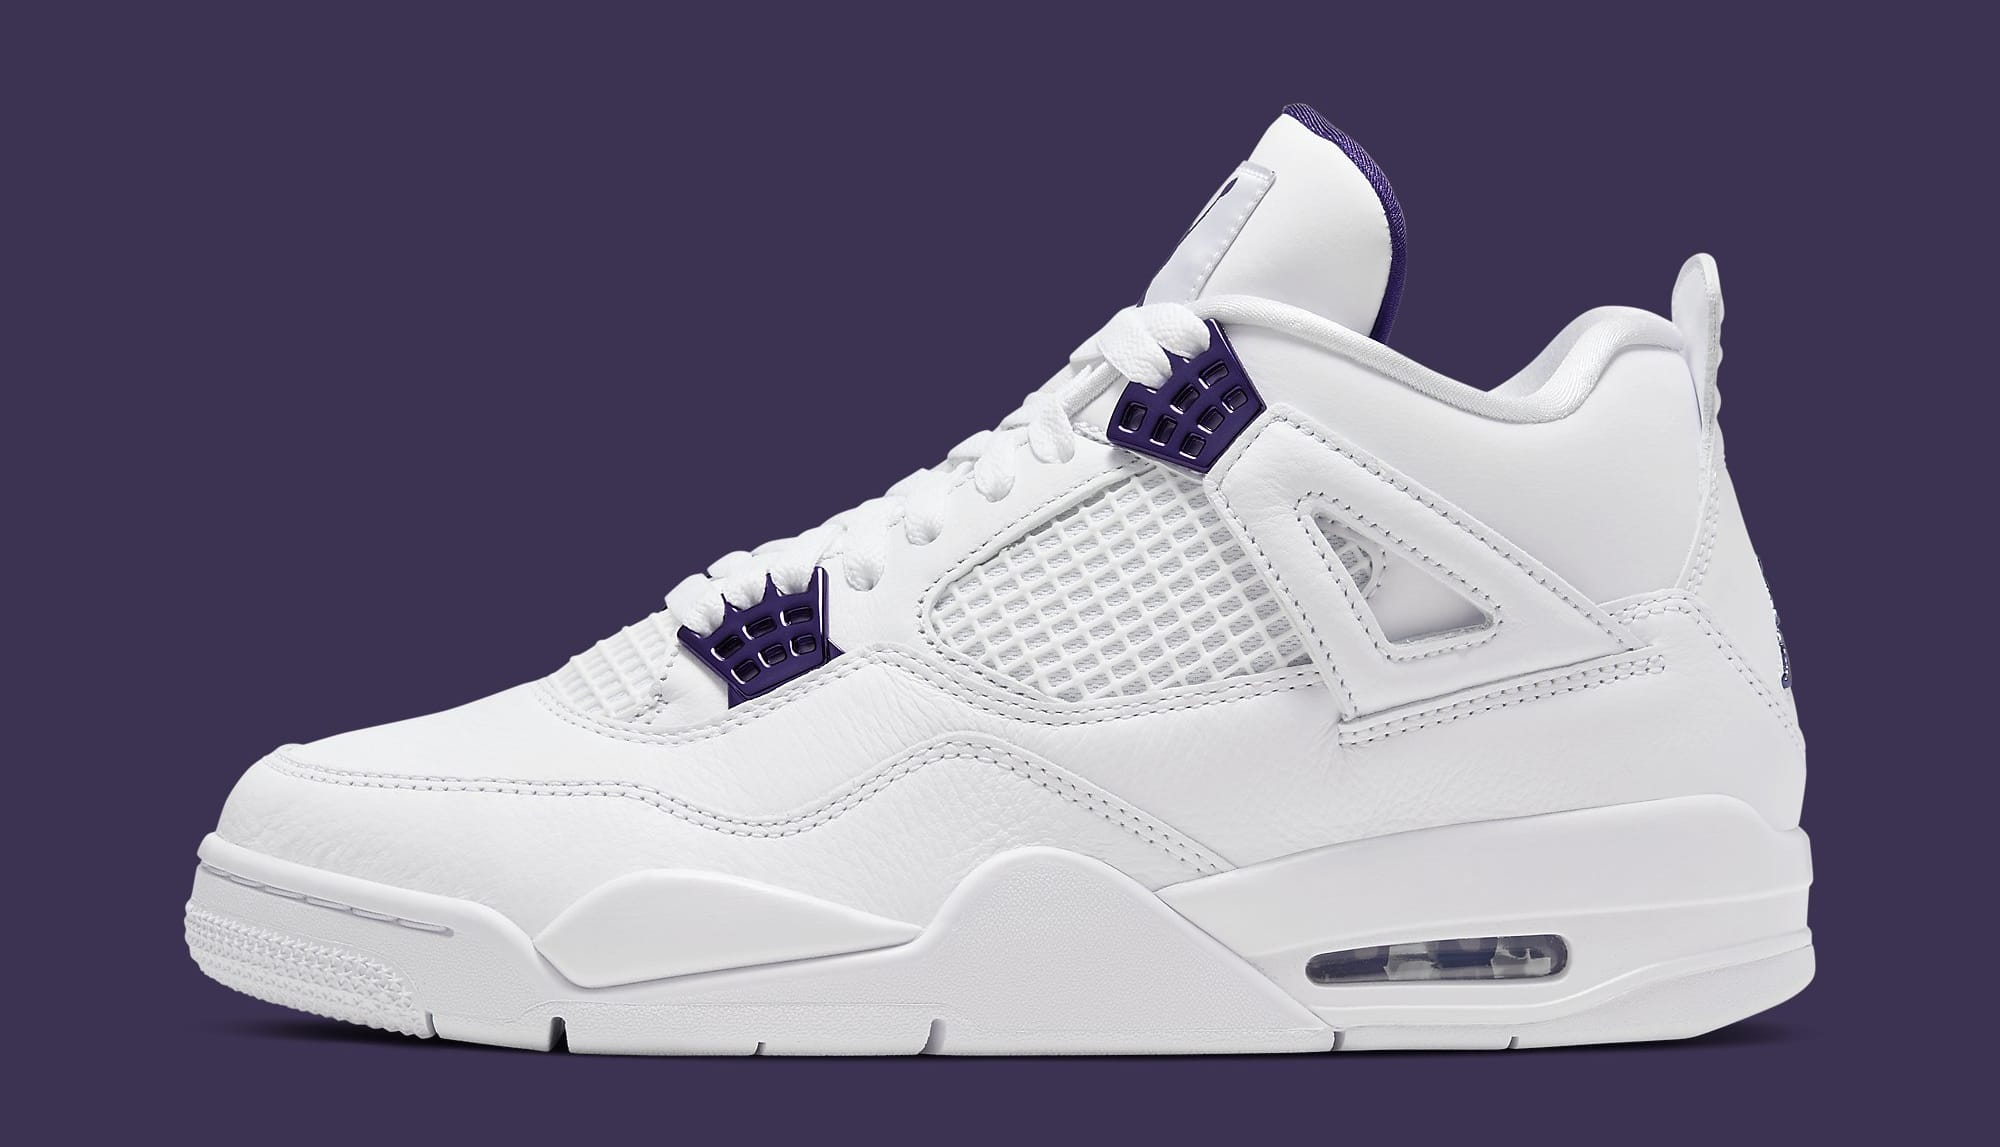 Air Jordan 4 Retro 'Metallic Purple' CT8527-115 Lateral